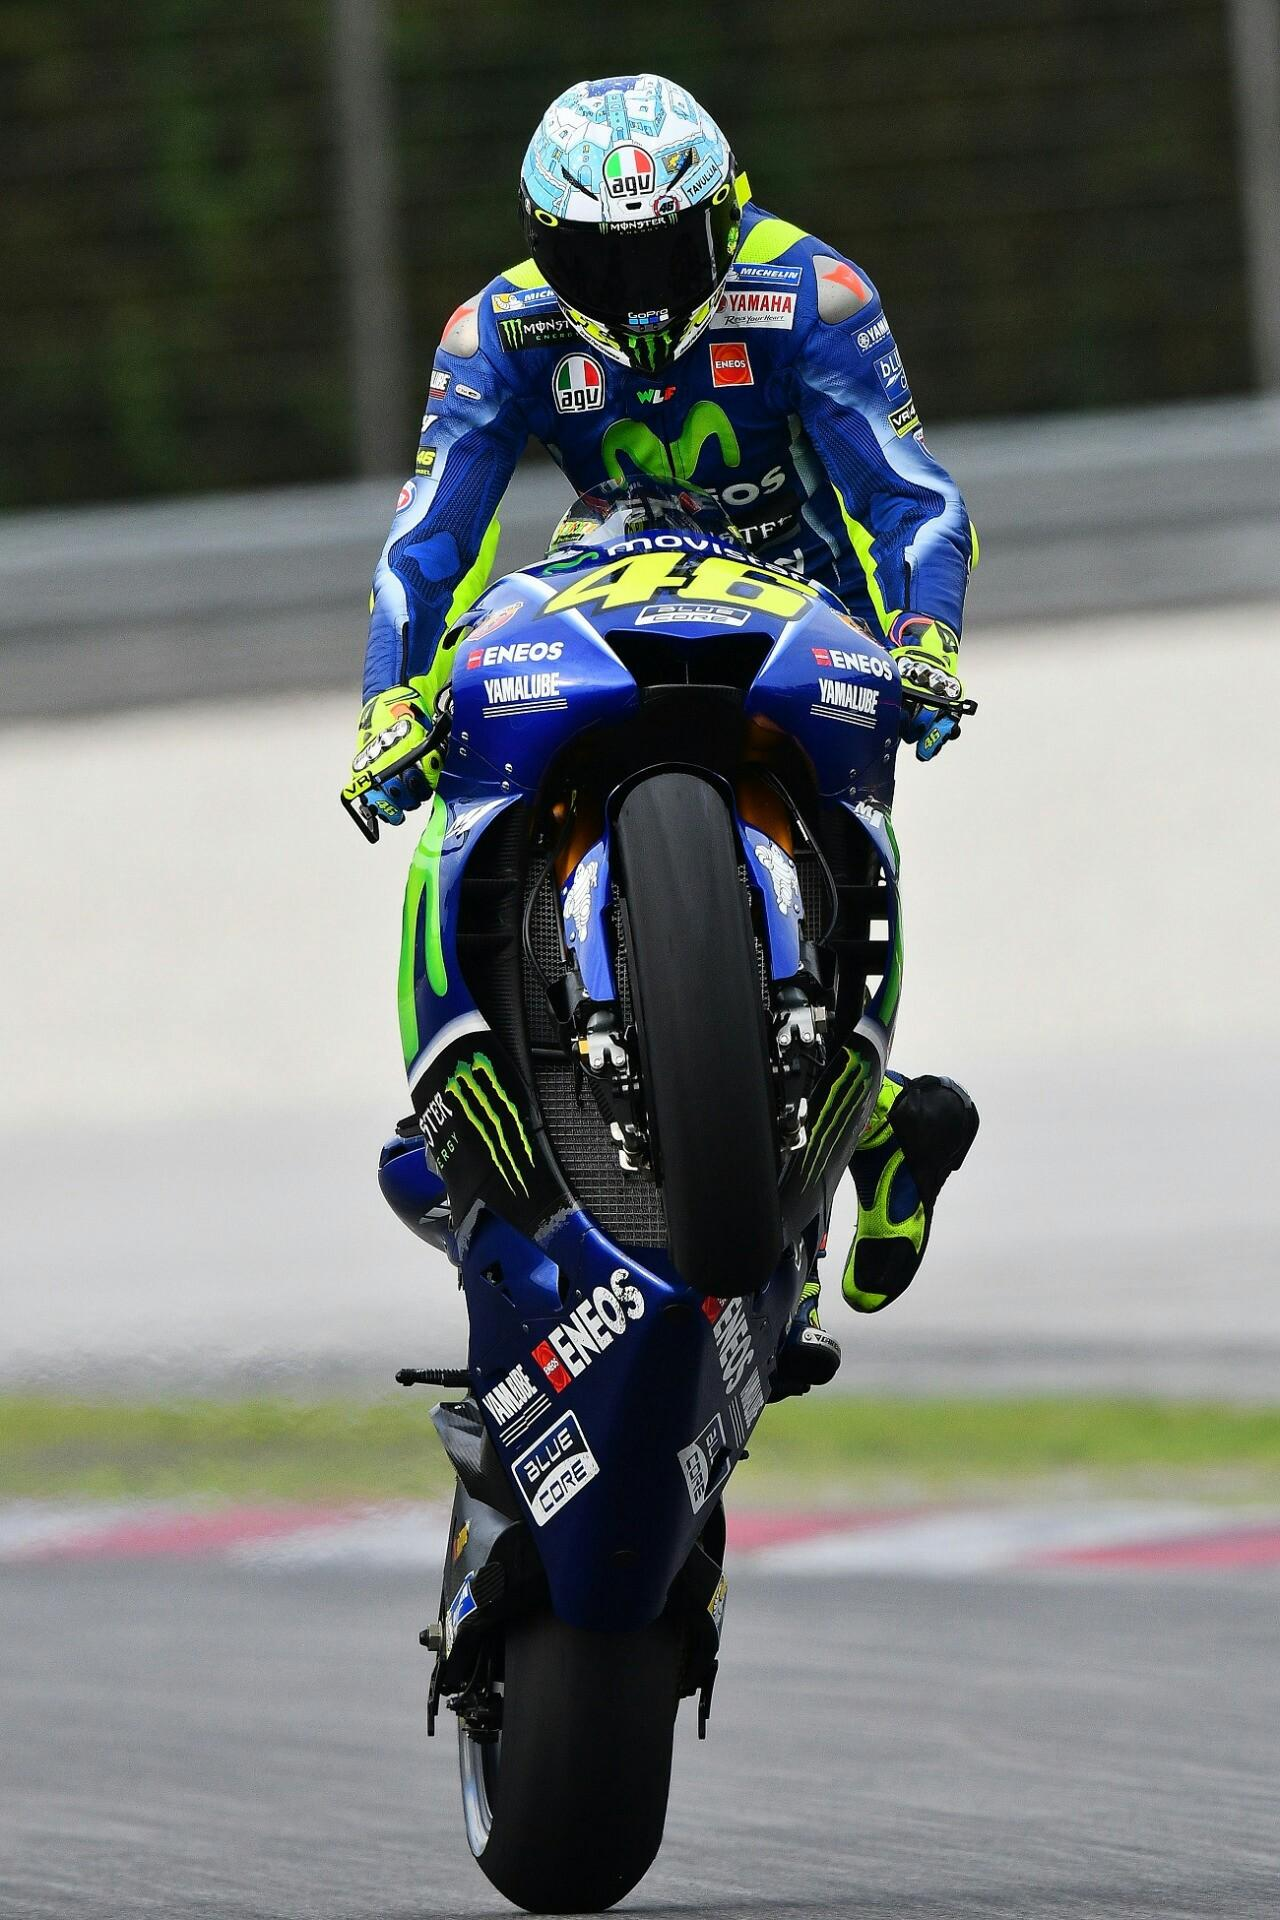 Valentino Rossi Wallpapers 0.55 Mb